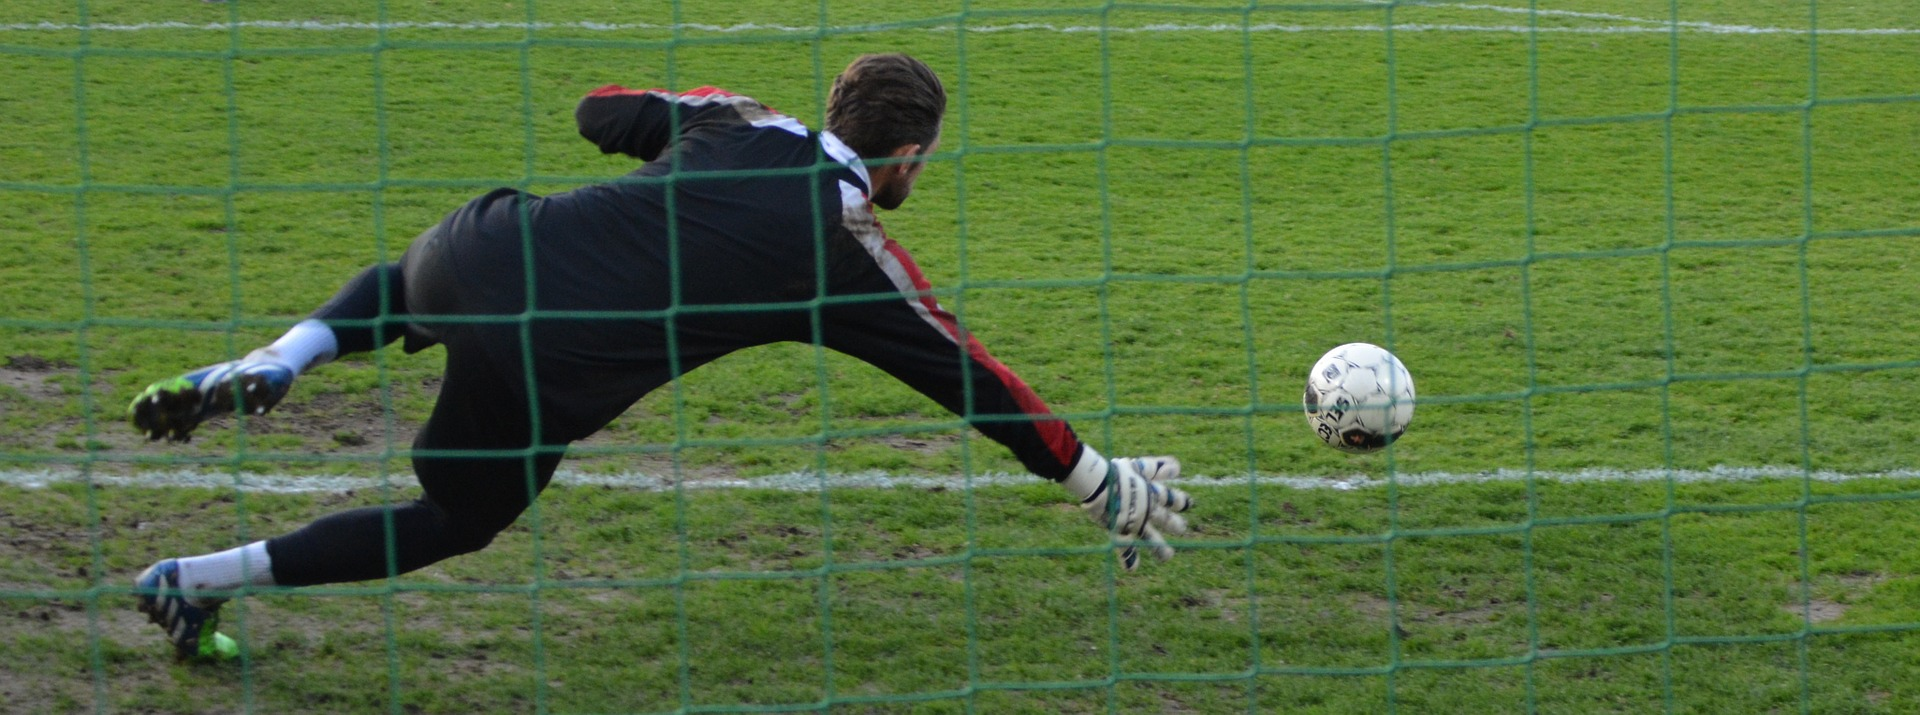 What Goalkeepers Should Do Before Facing a Shot